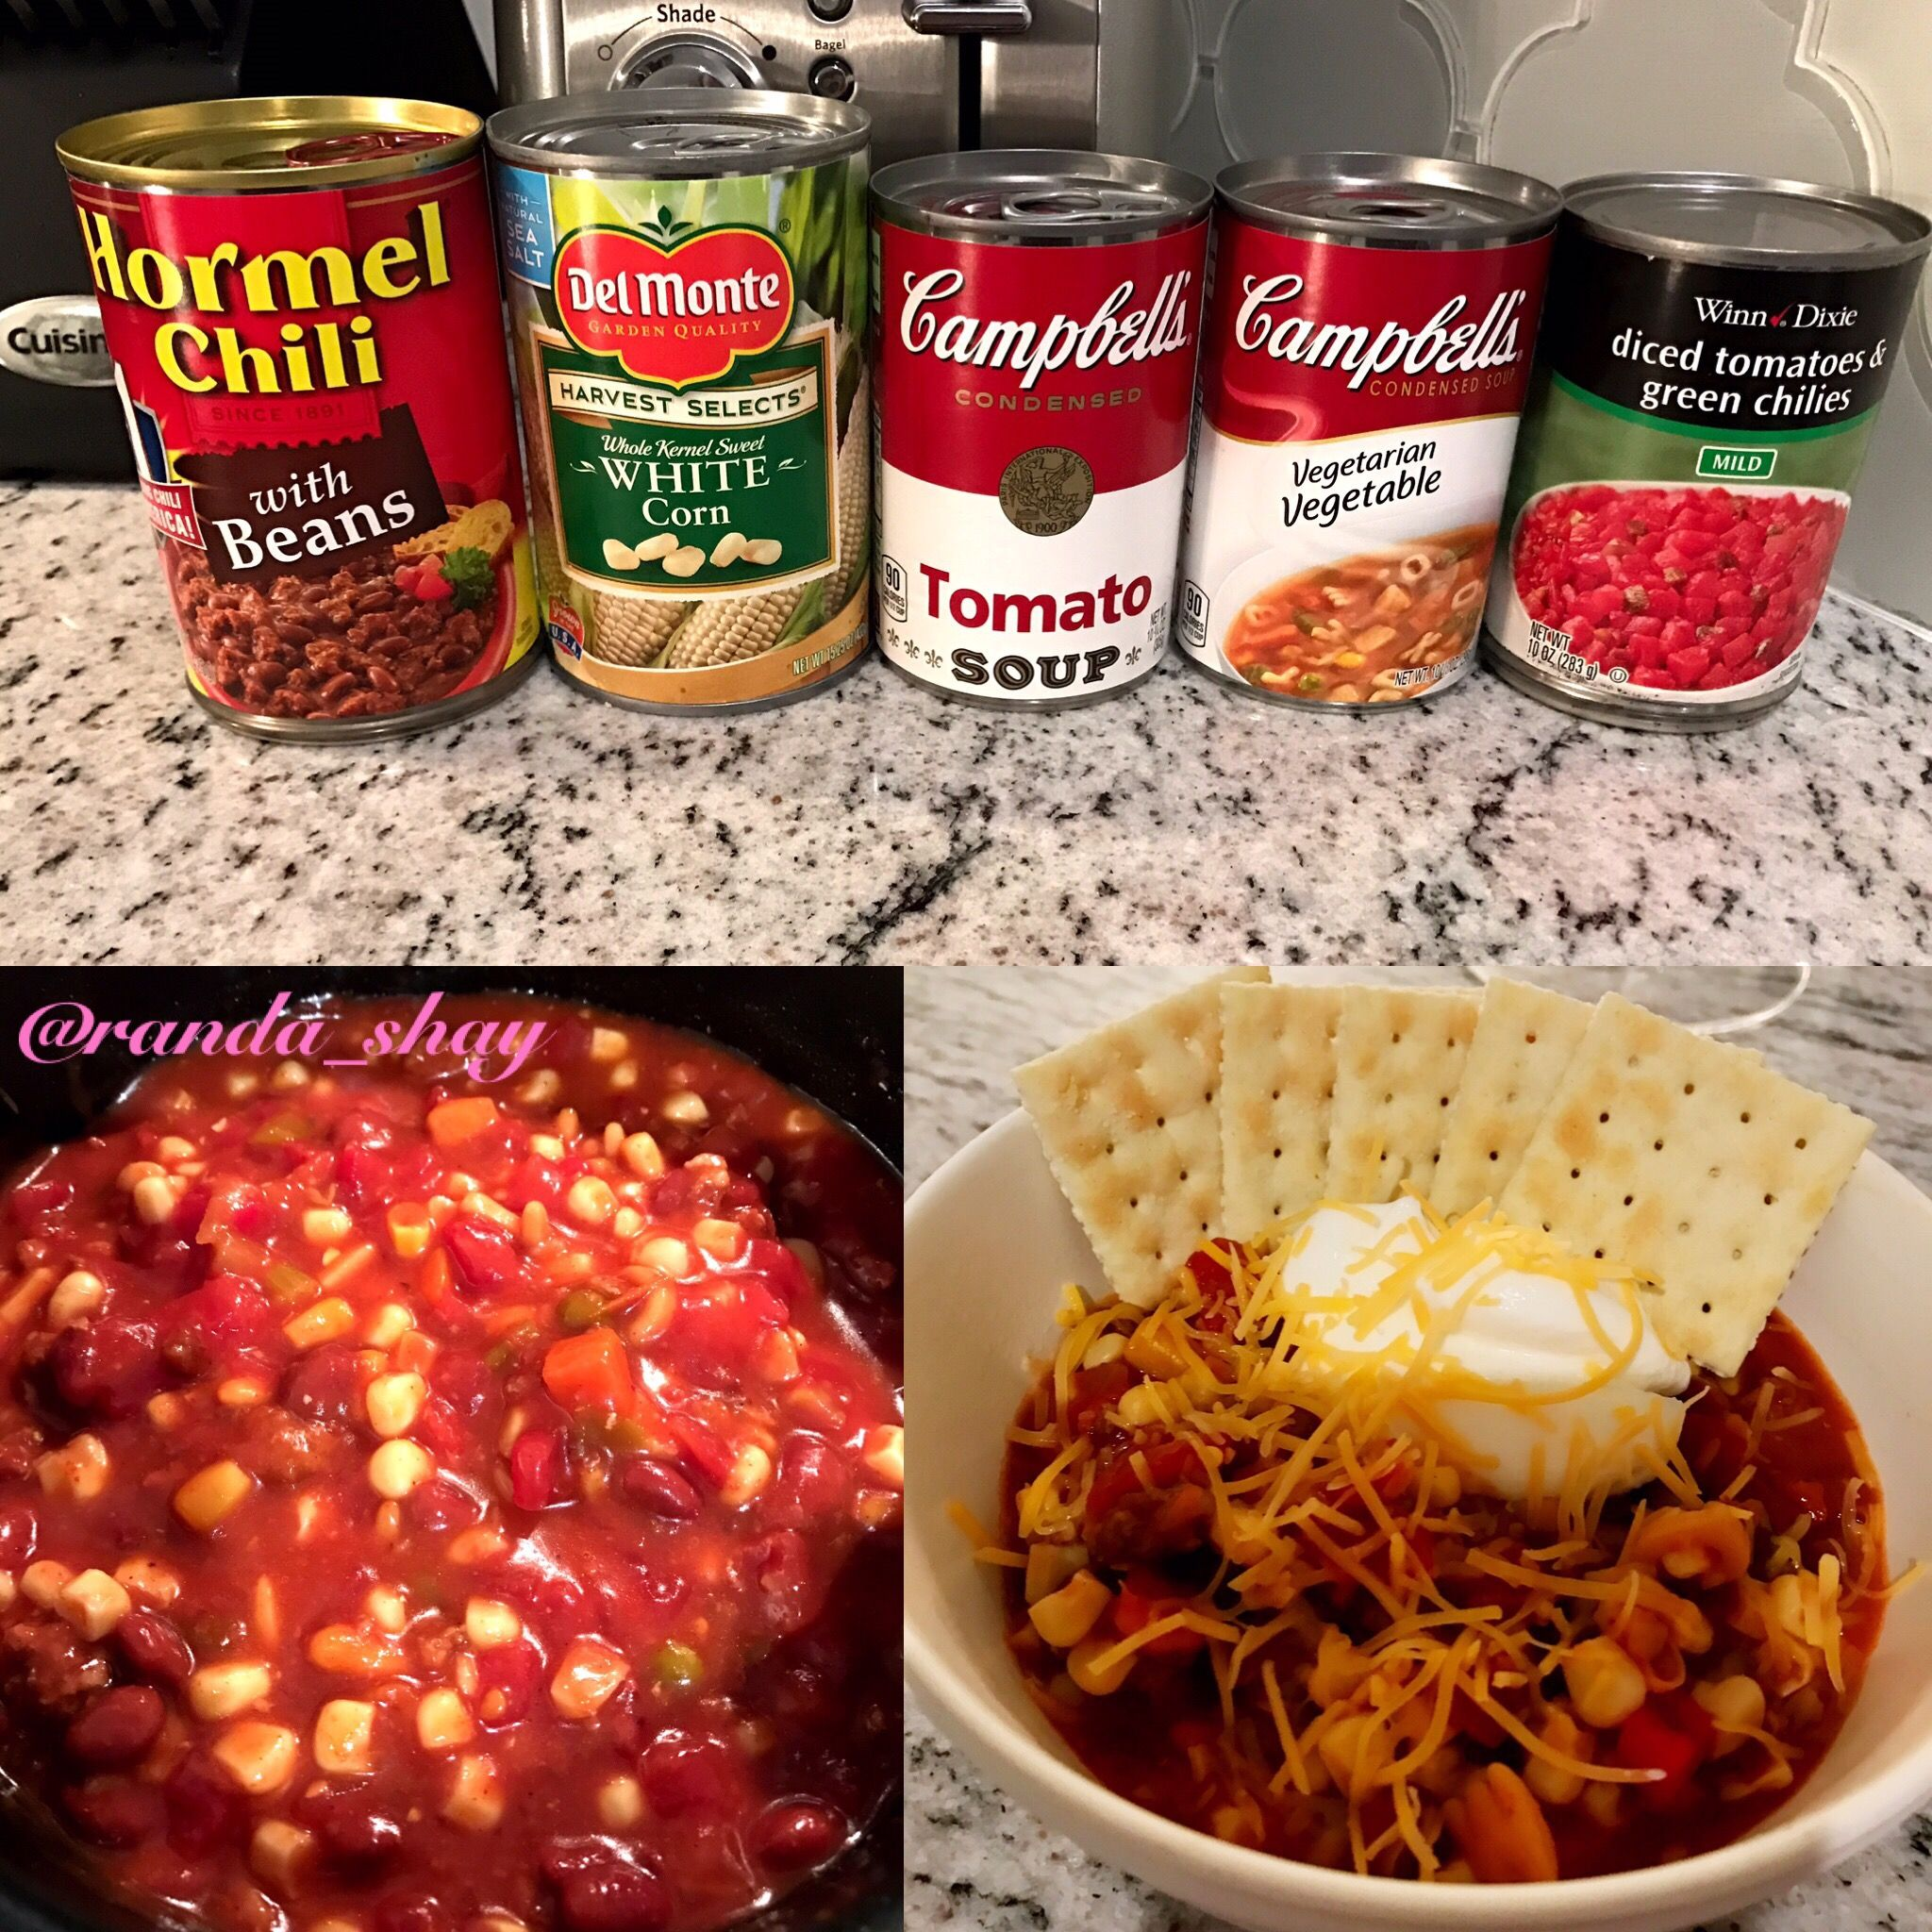 5 Can Soup Hormel Chili W Beans Whole Kernel Sweet White Corn Tomato Soup Vegetable Soup You Can Use W Or W Hormel Recipes Chili Dinner Can Soup Recipe